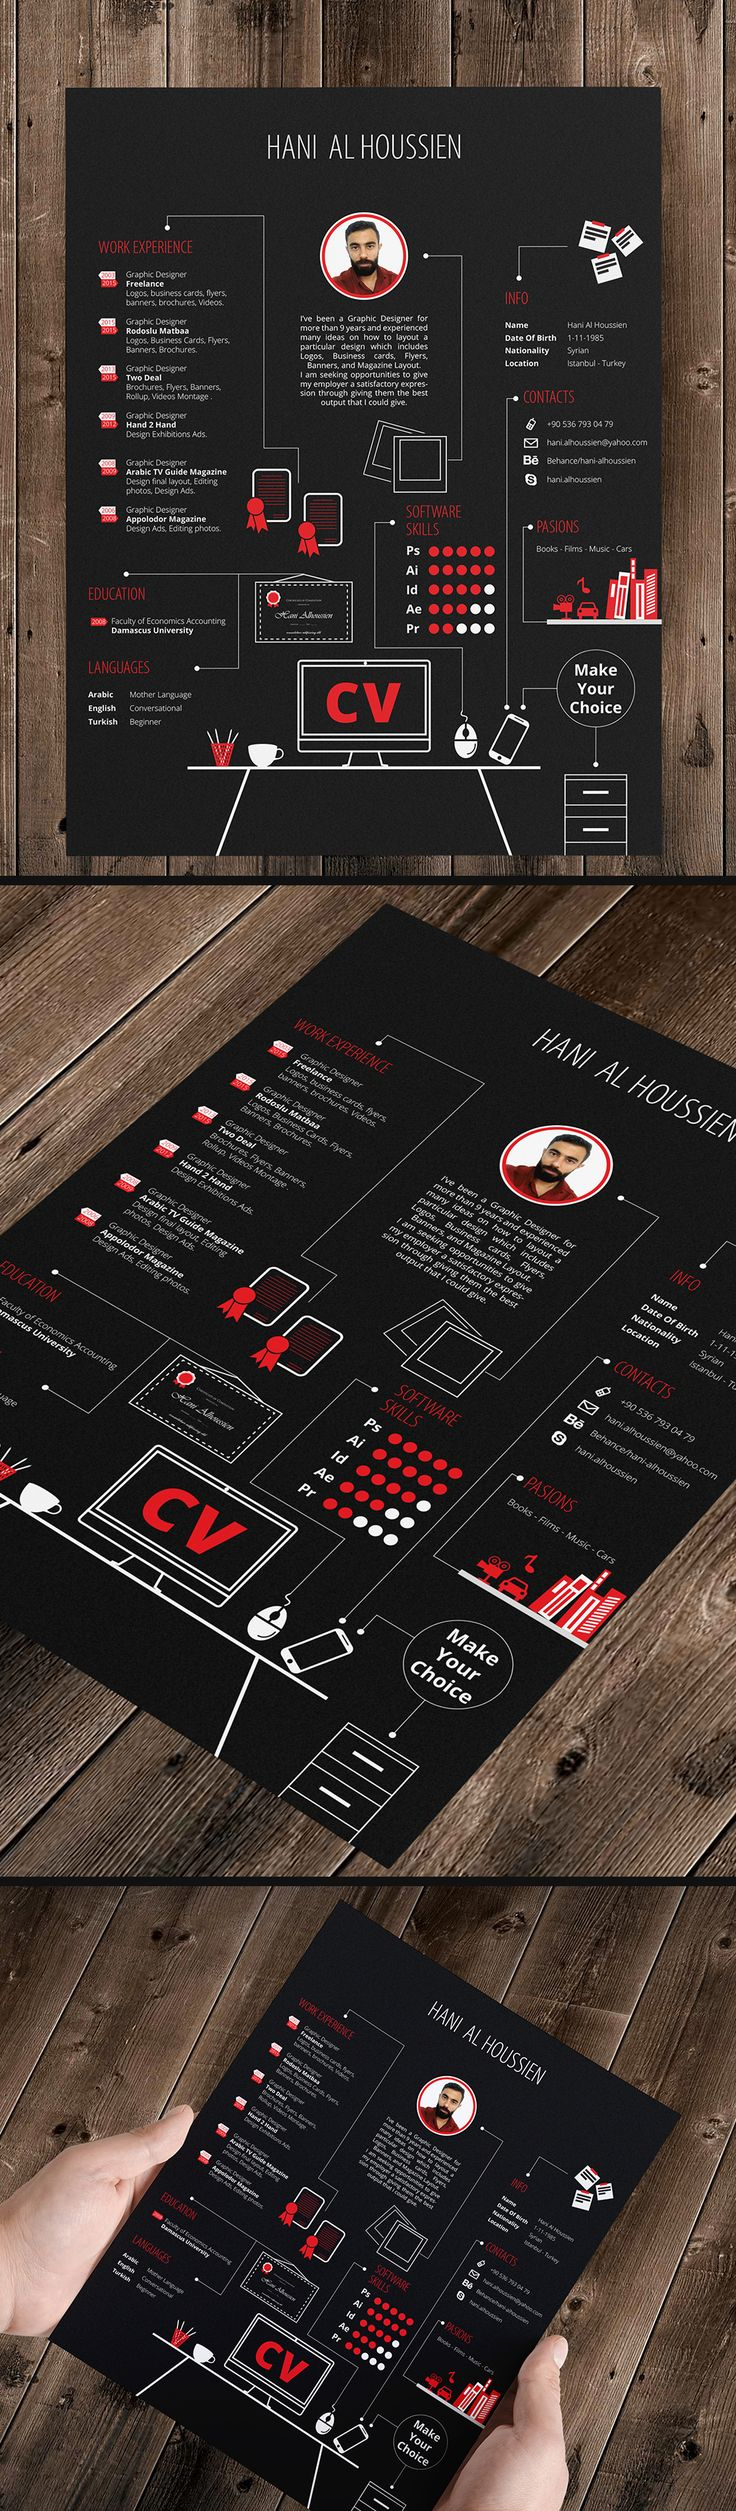 CV Graphic Designer on Behance More